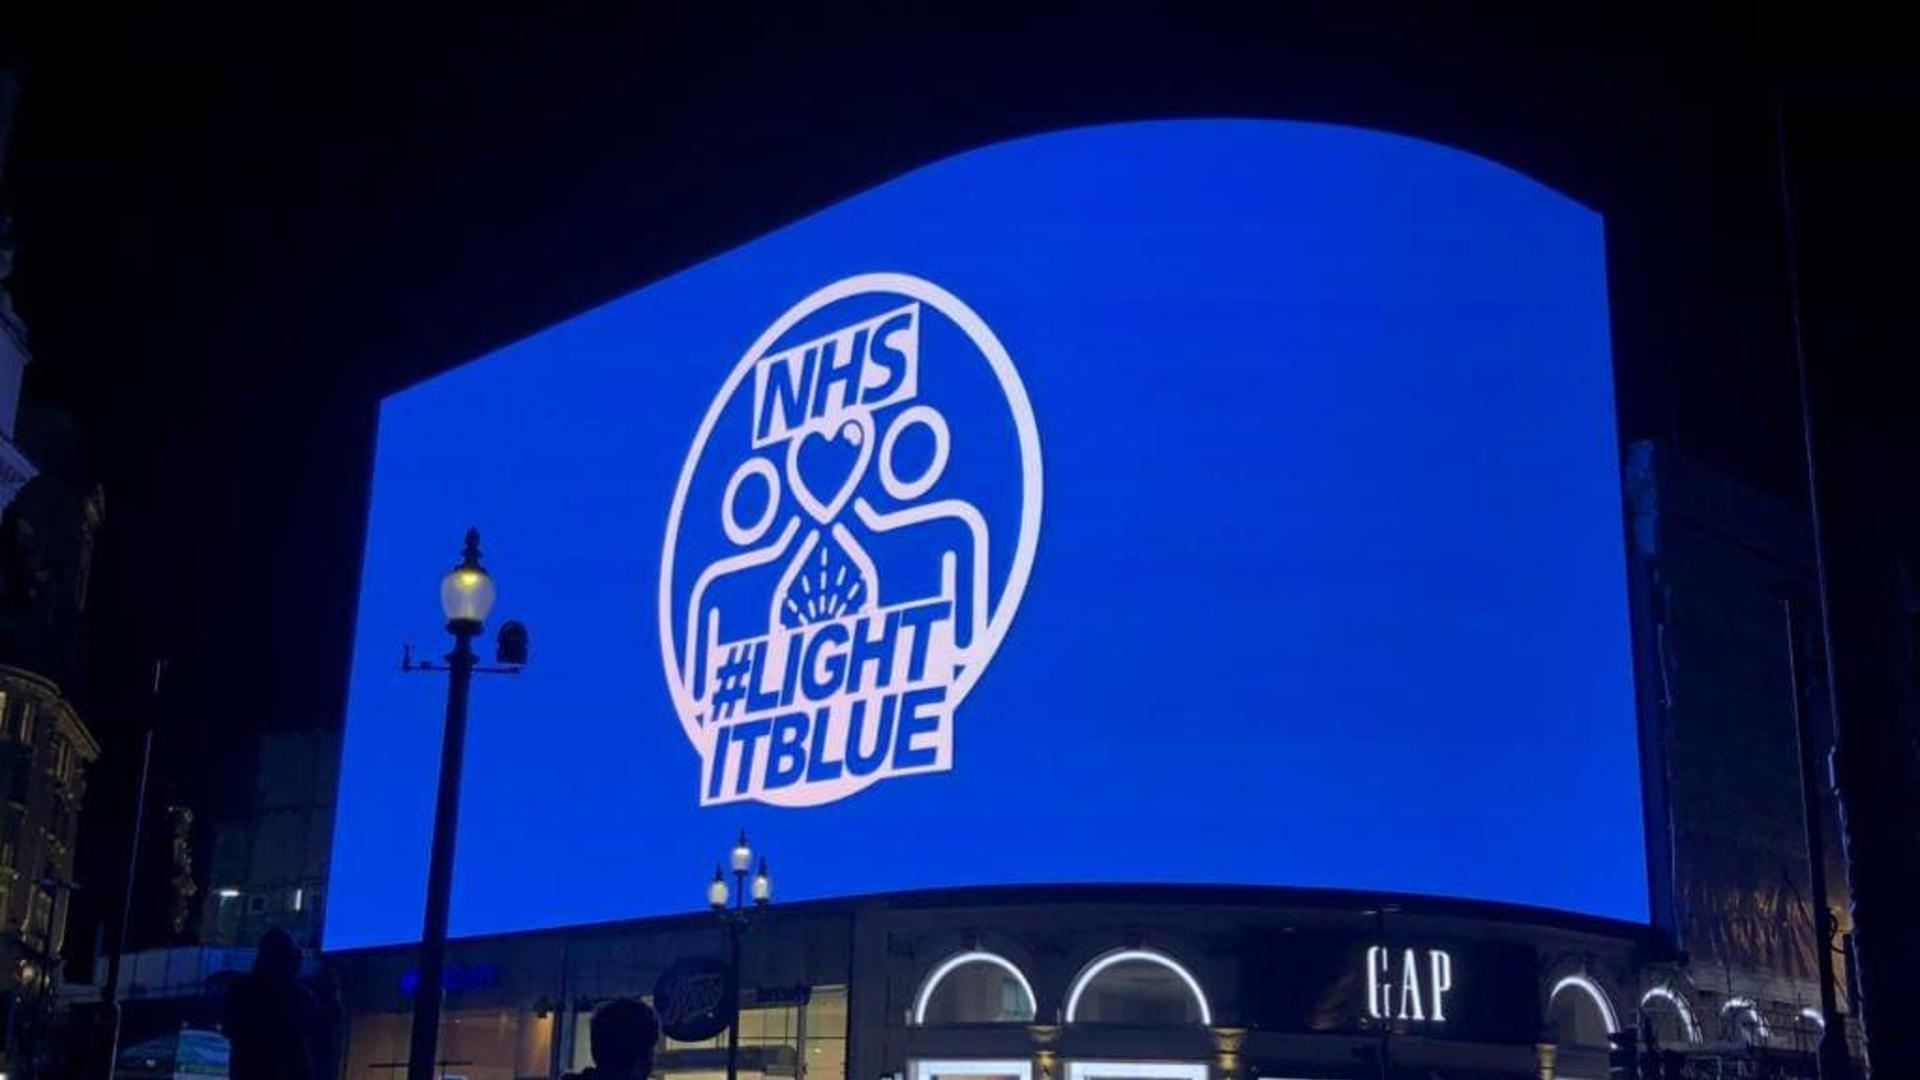 NHS #LightItBlue